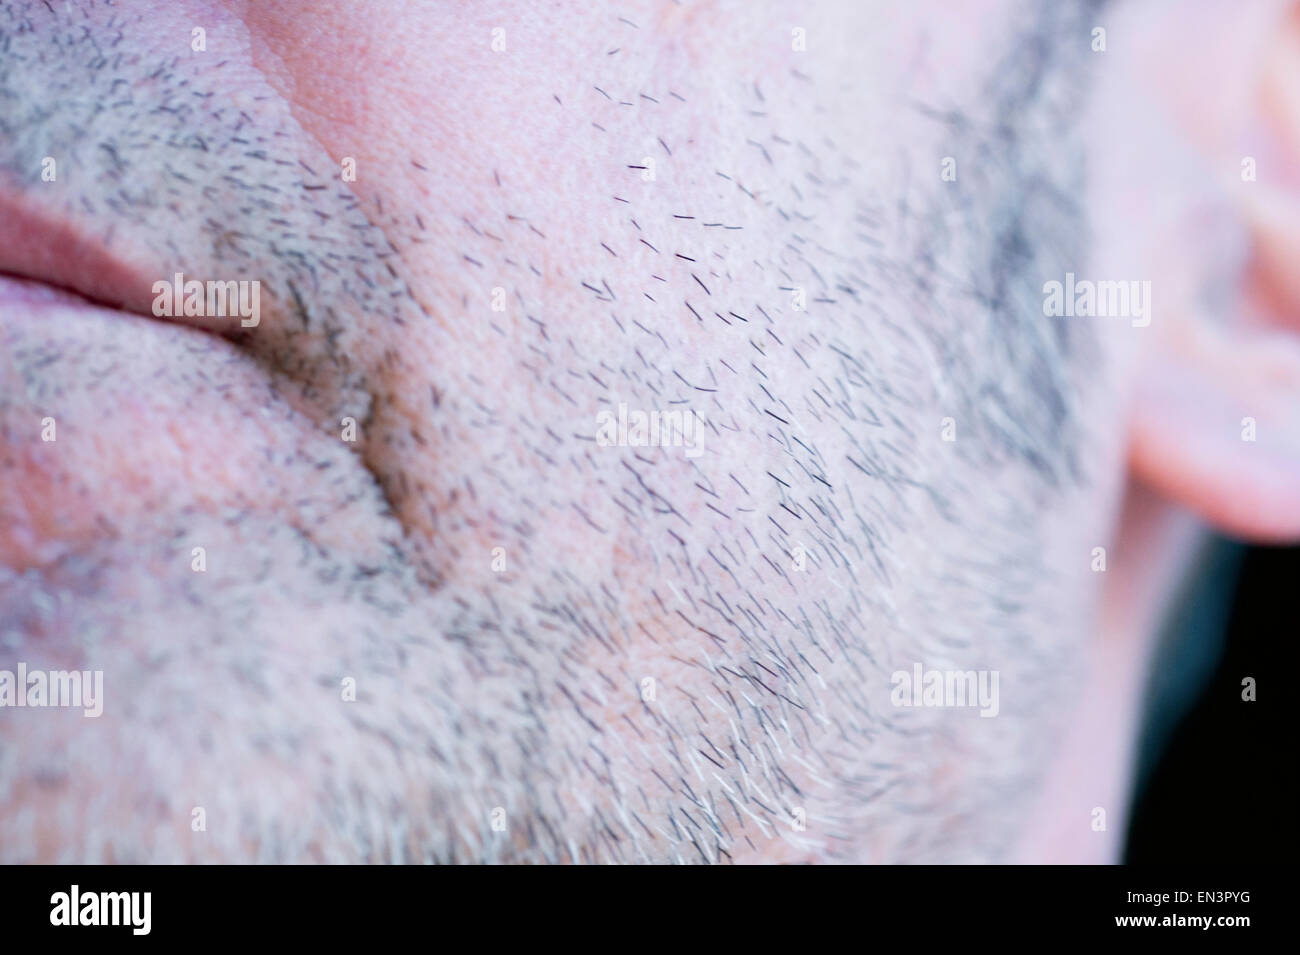 man face with beard - Stock Image